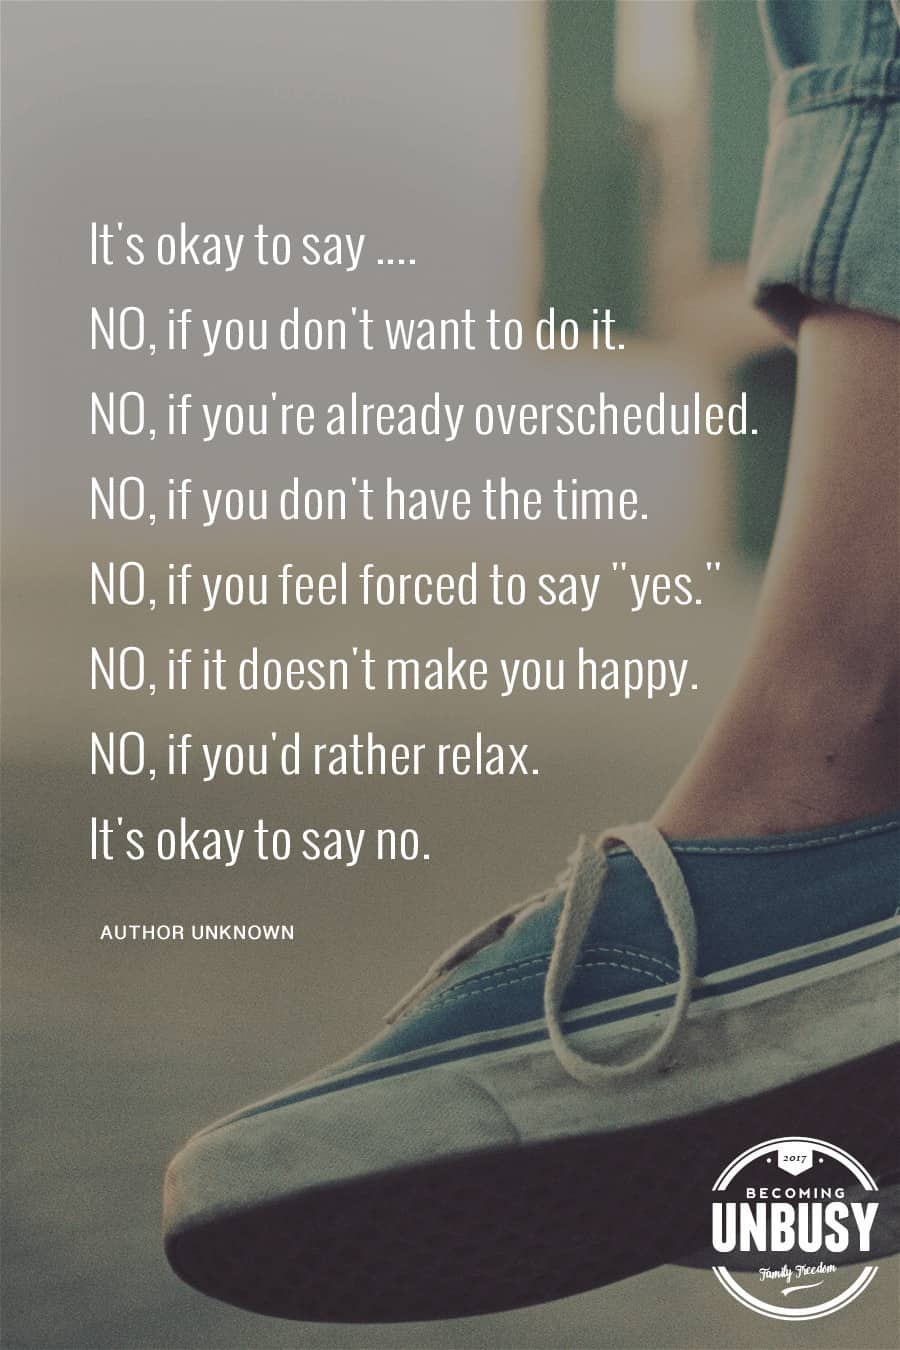 There are so many options of things we could be doing, but I've been opting out of all of it. No to the weekly obligations after school. No to practices and games. No to feeling overwhelmed and stressed. I say no and I say it often. #becomingunbusy *Great post on embracing simplicity